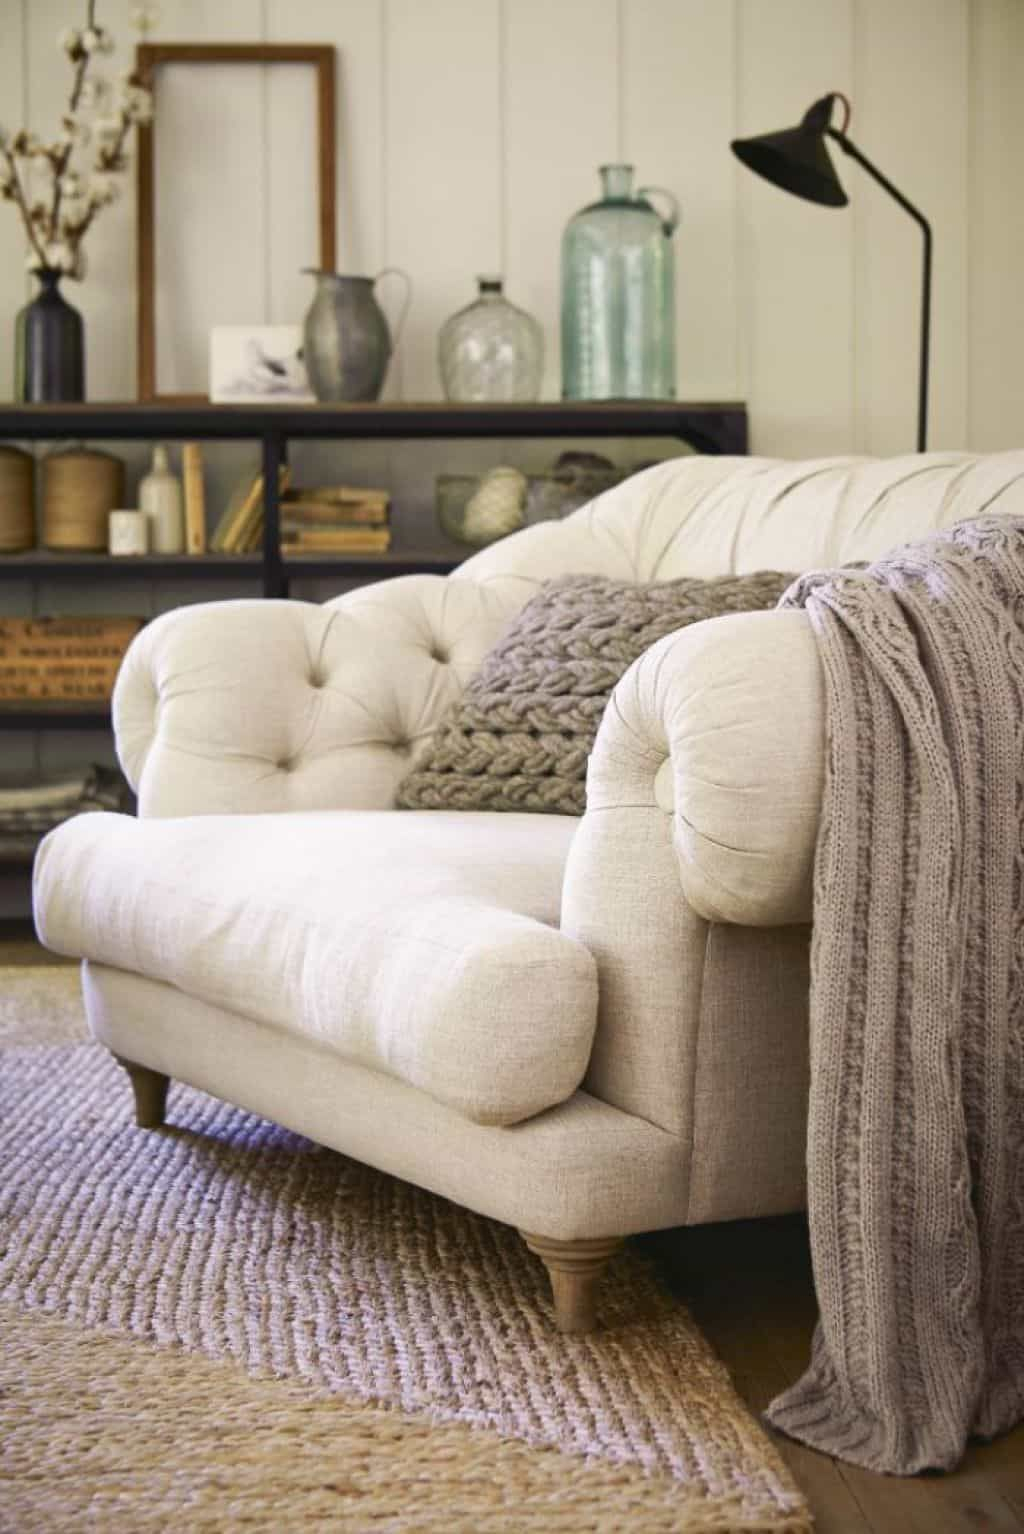 Unique And Comfortable Oversized Chairs | Rooms Home Decor For Live It Cozy Armchairs (View 14 of 15)